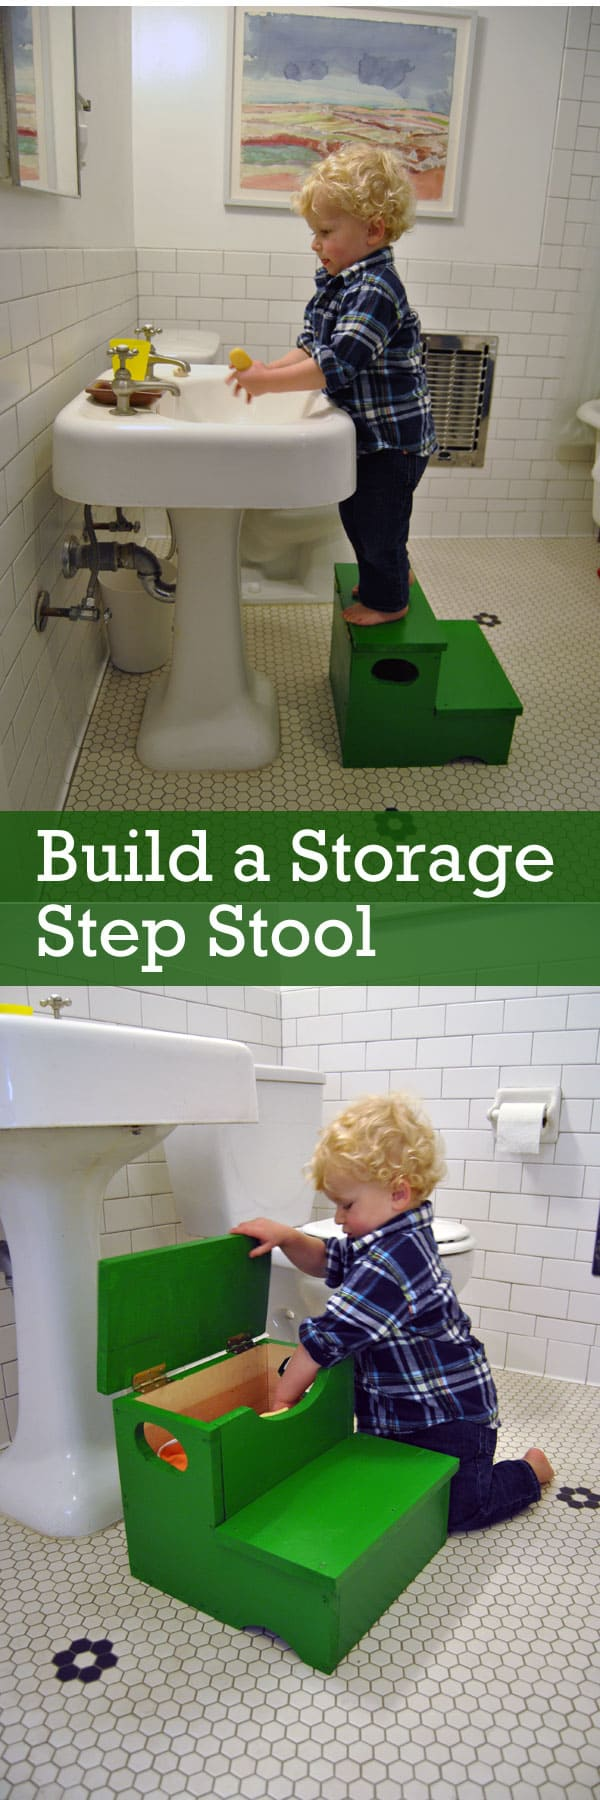 Build a Storage Step Stool